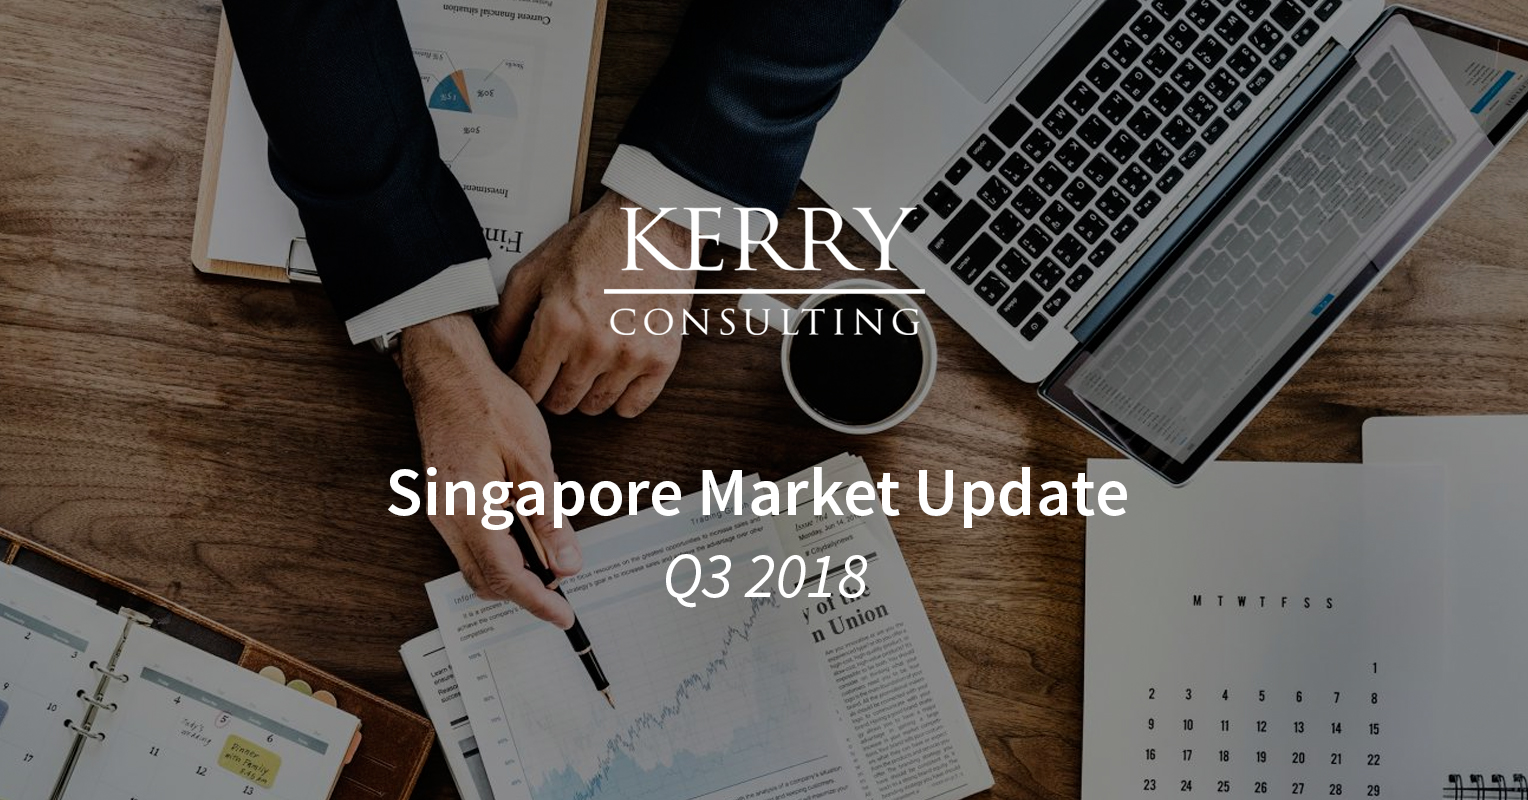 Kerry's Singapore Market Update Q3 2018